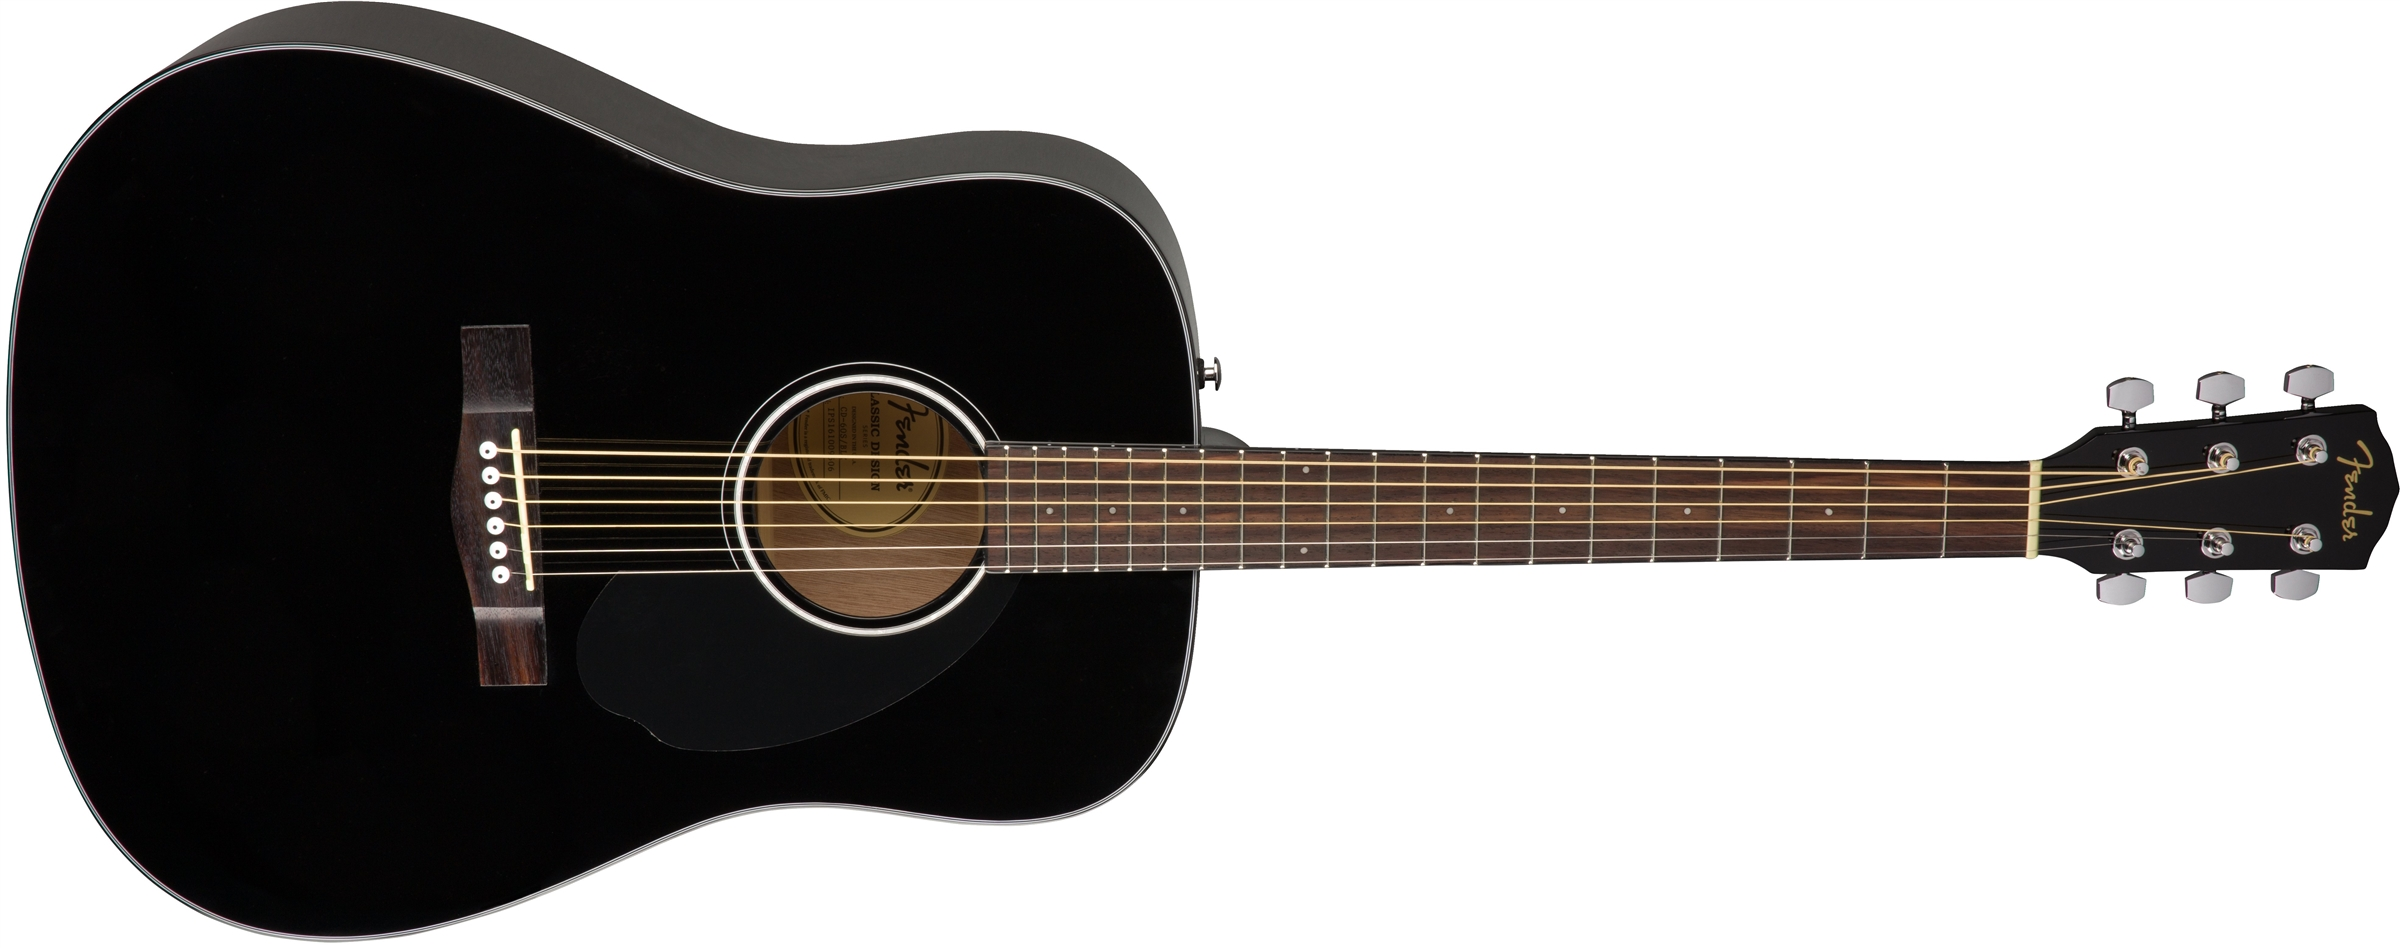 FENDER CD 60 S ACUSTICA BLACK - 0970110006